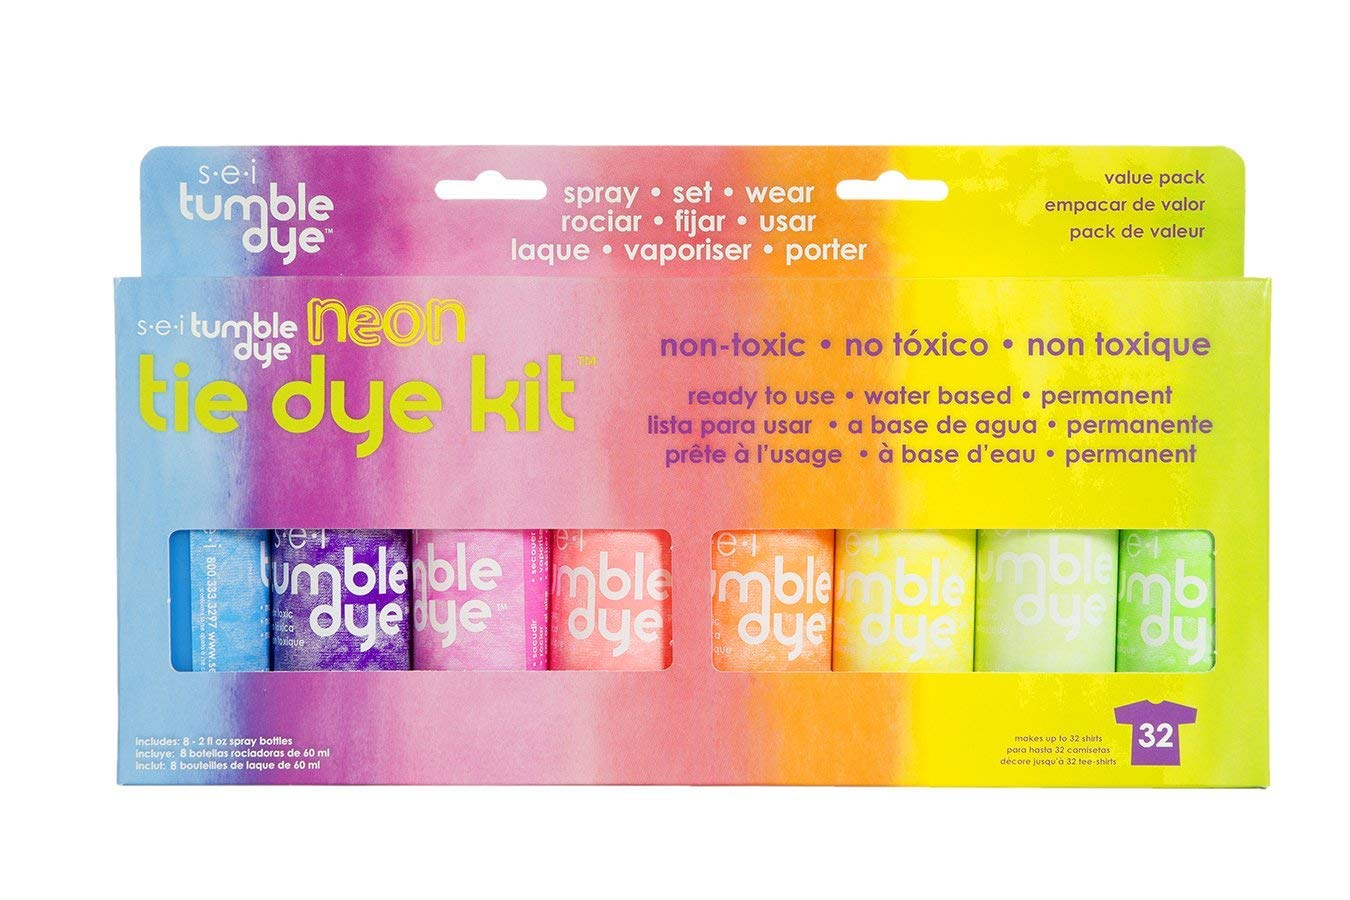 SEI Tumble Dye Craft And Fabric Spray 2oz 8/Pkg-Neon Assorted Colors 6-2005